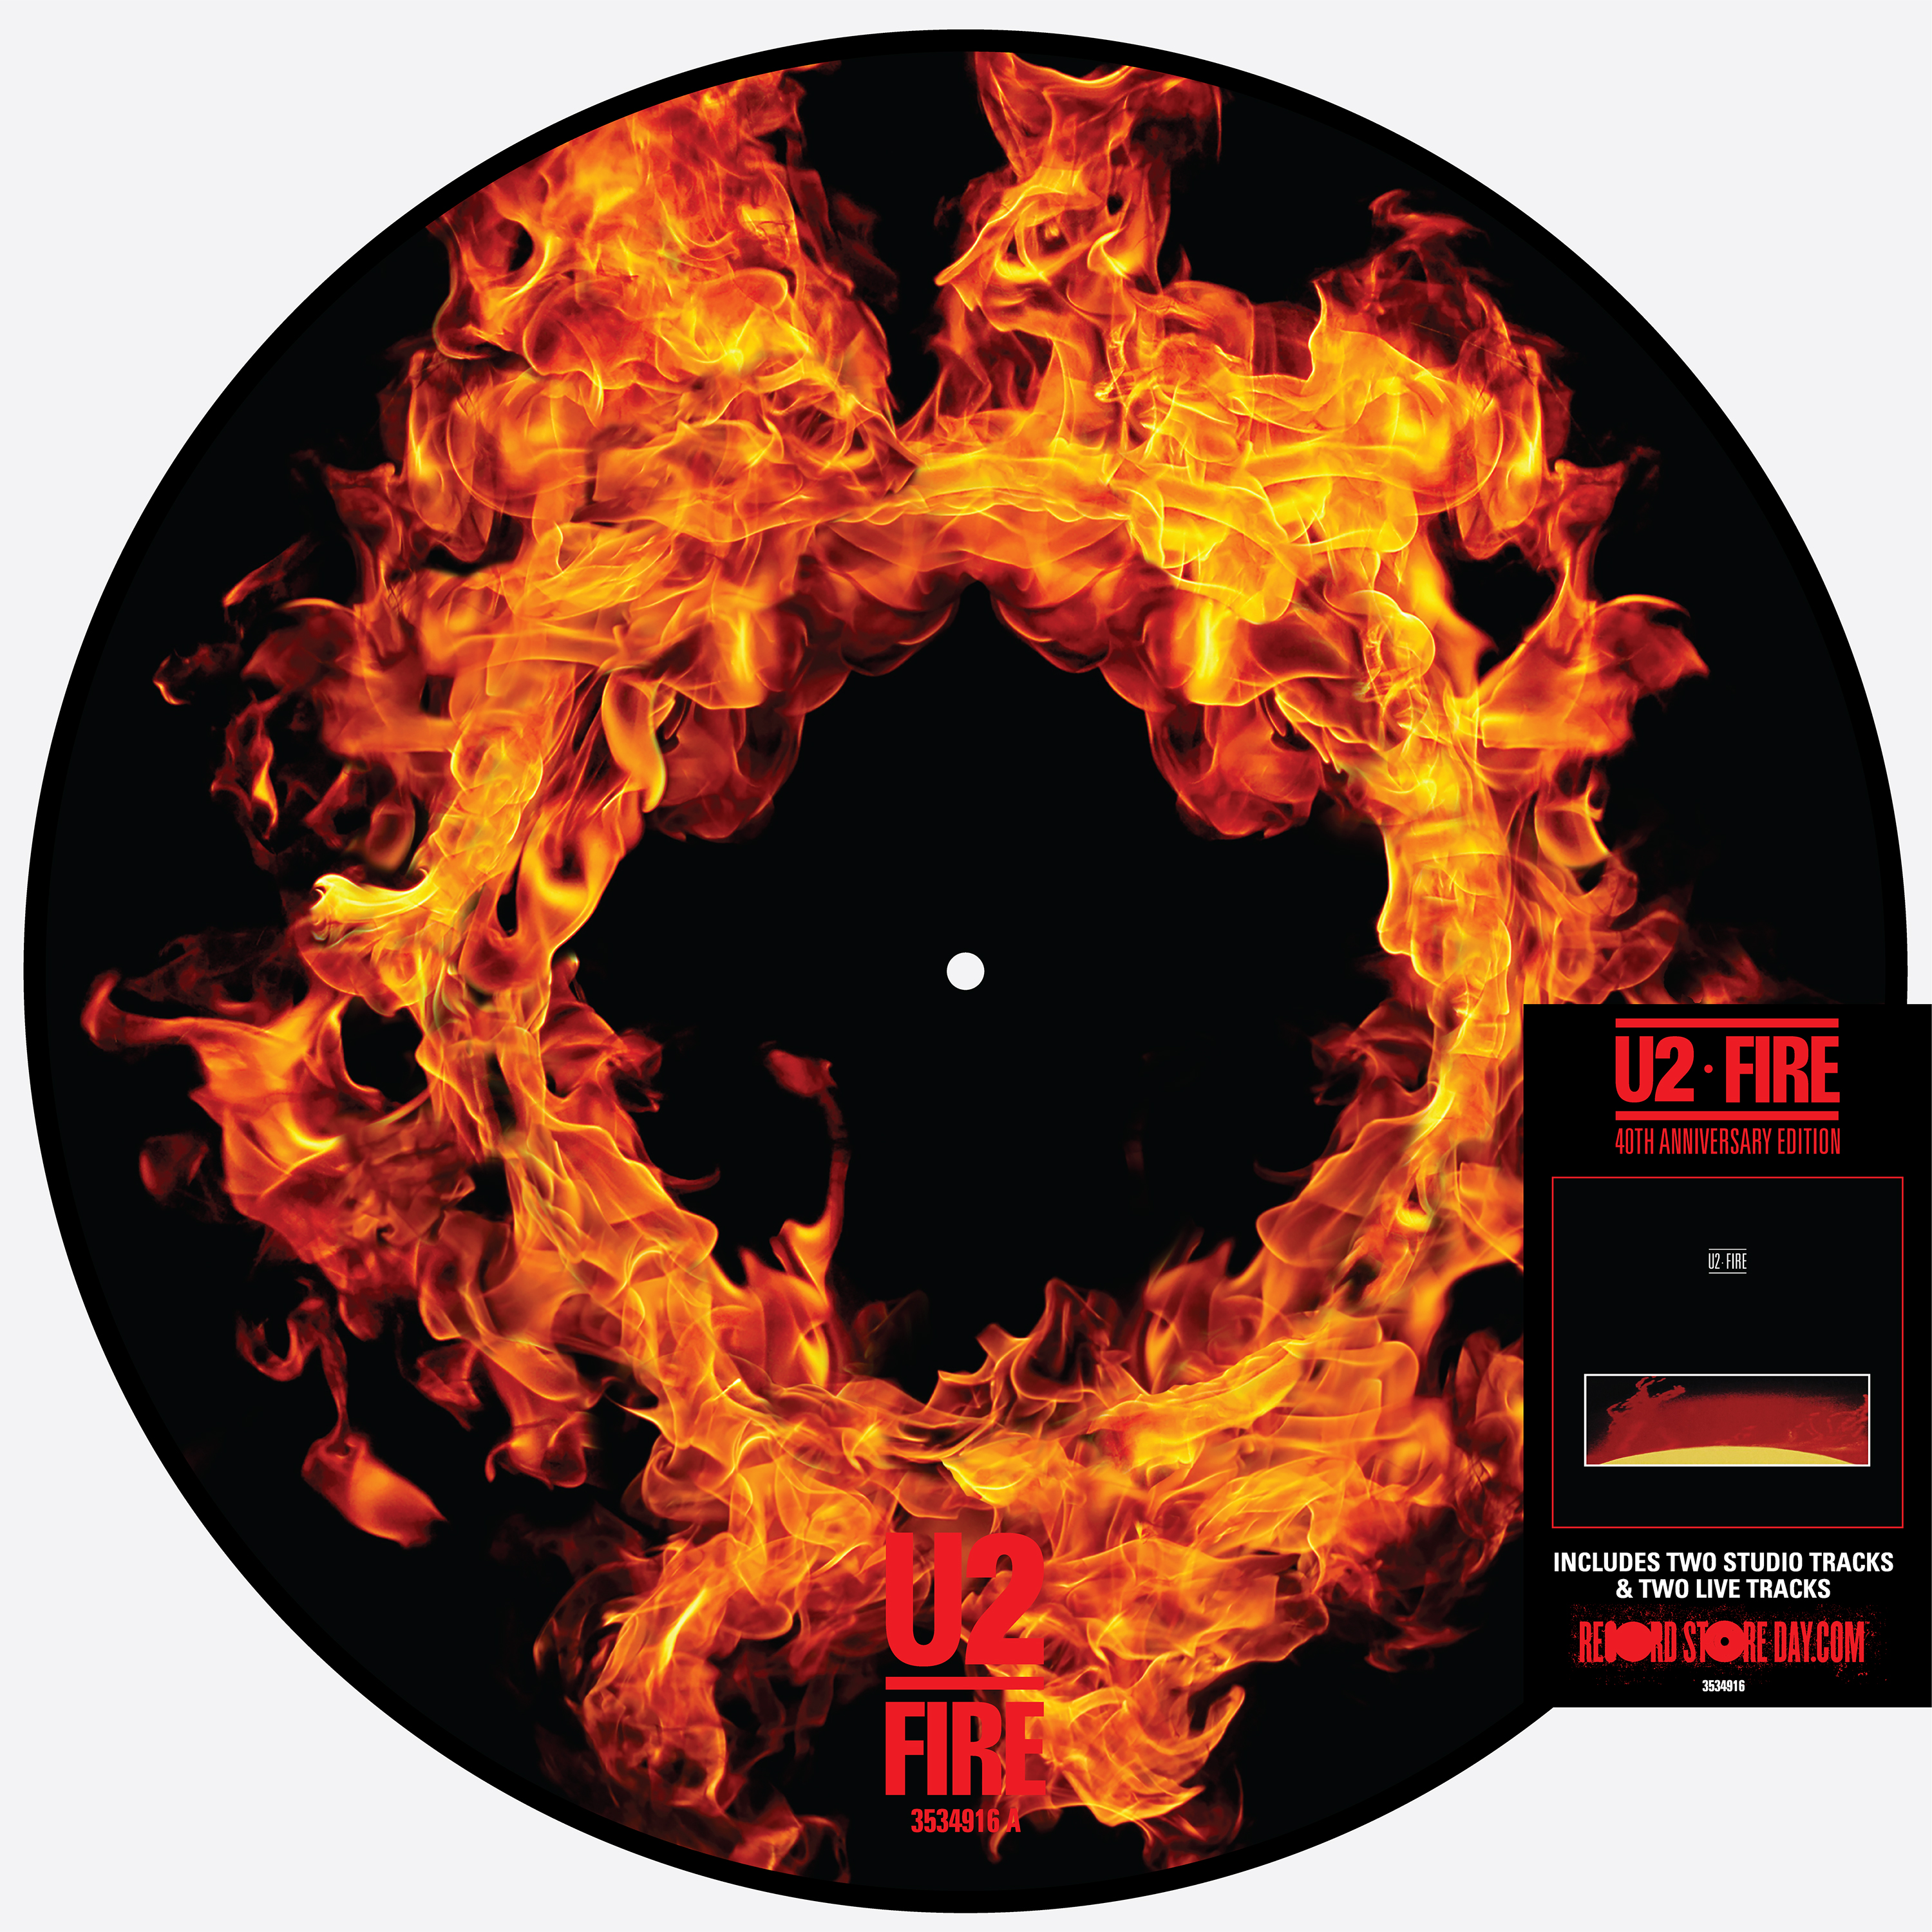 Fire (40th Anniversary Edition- pic disc)